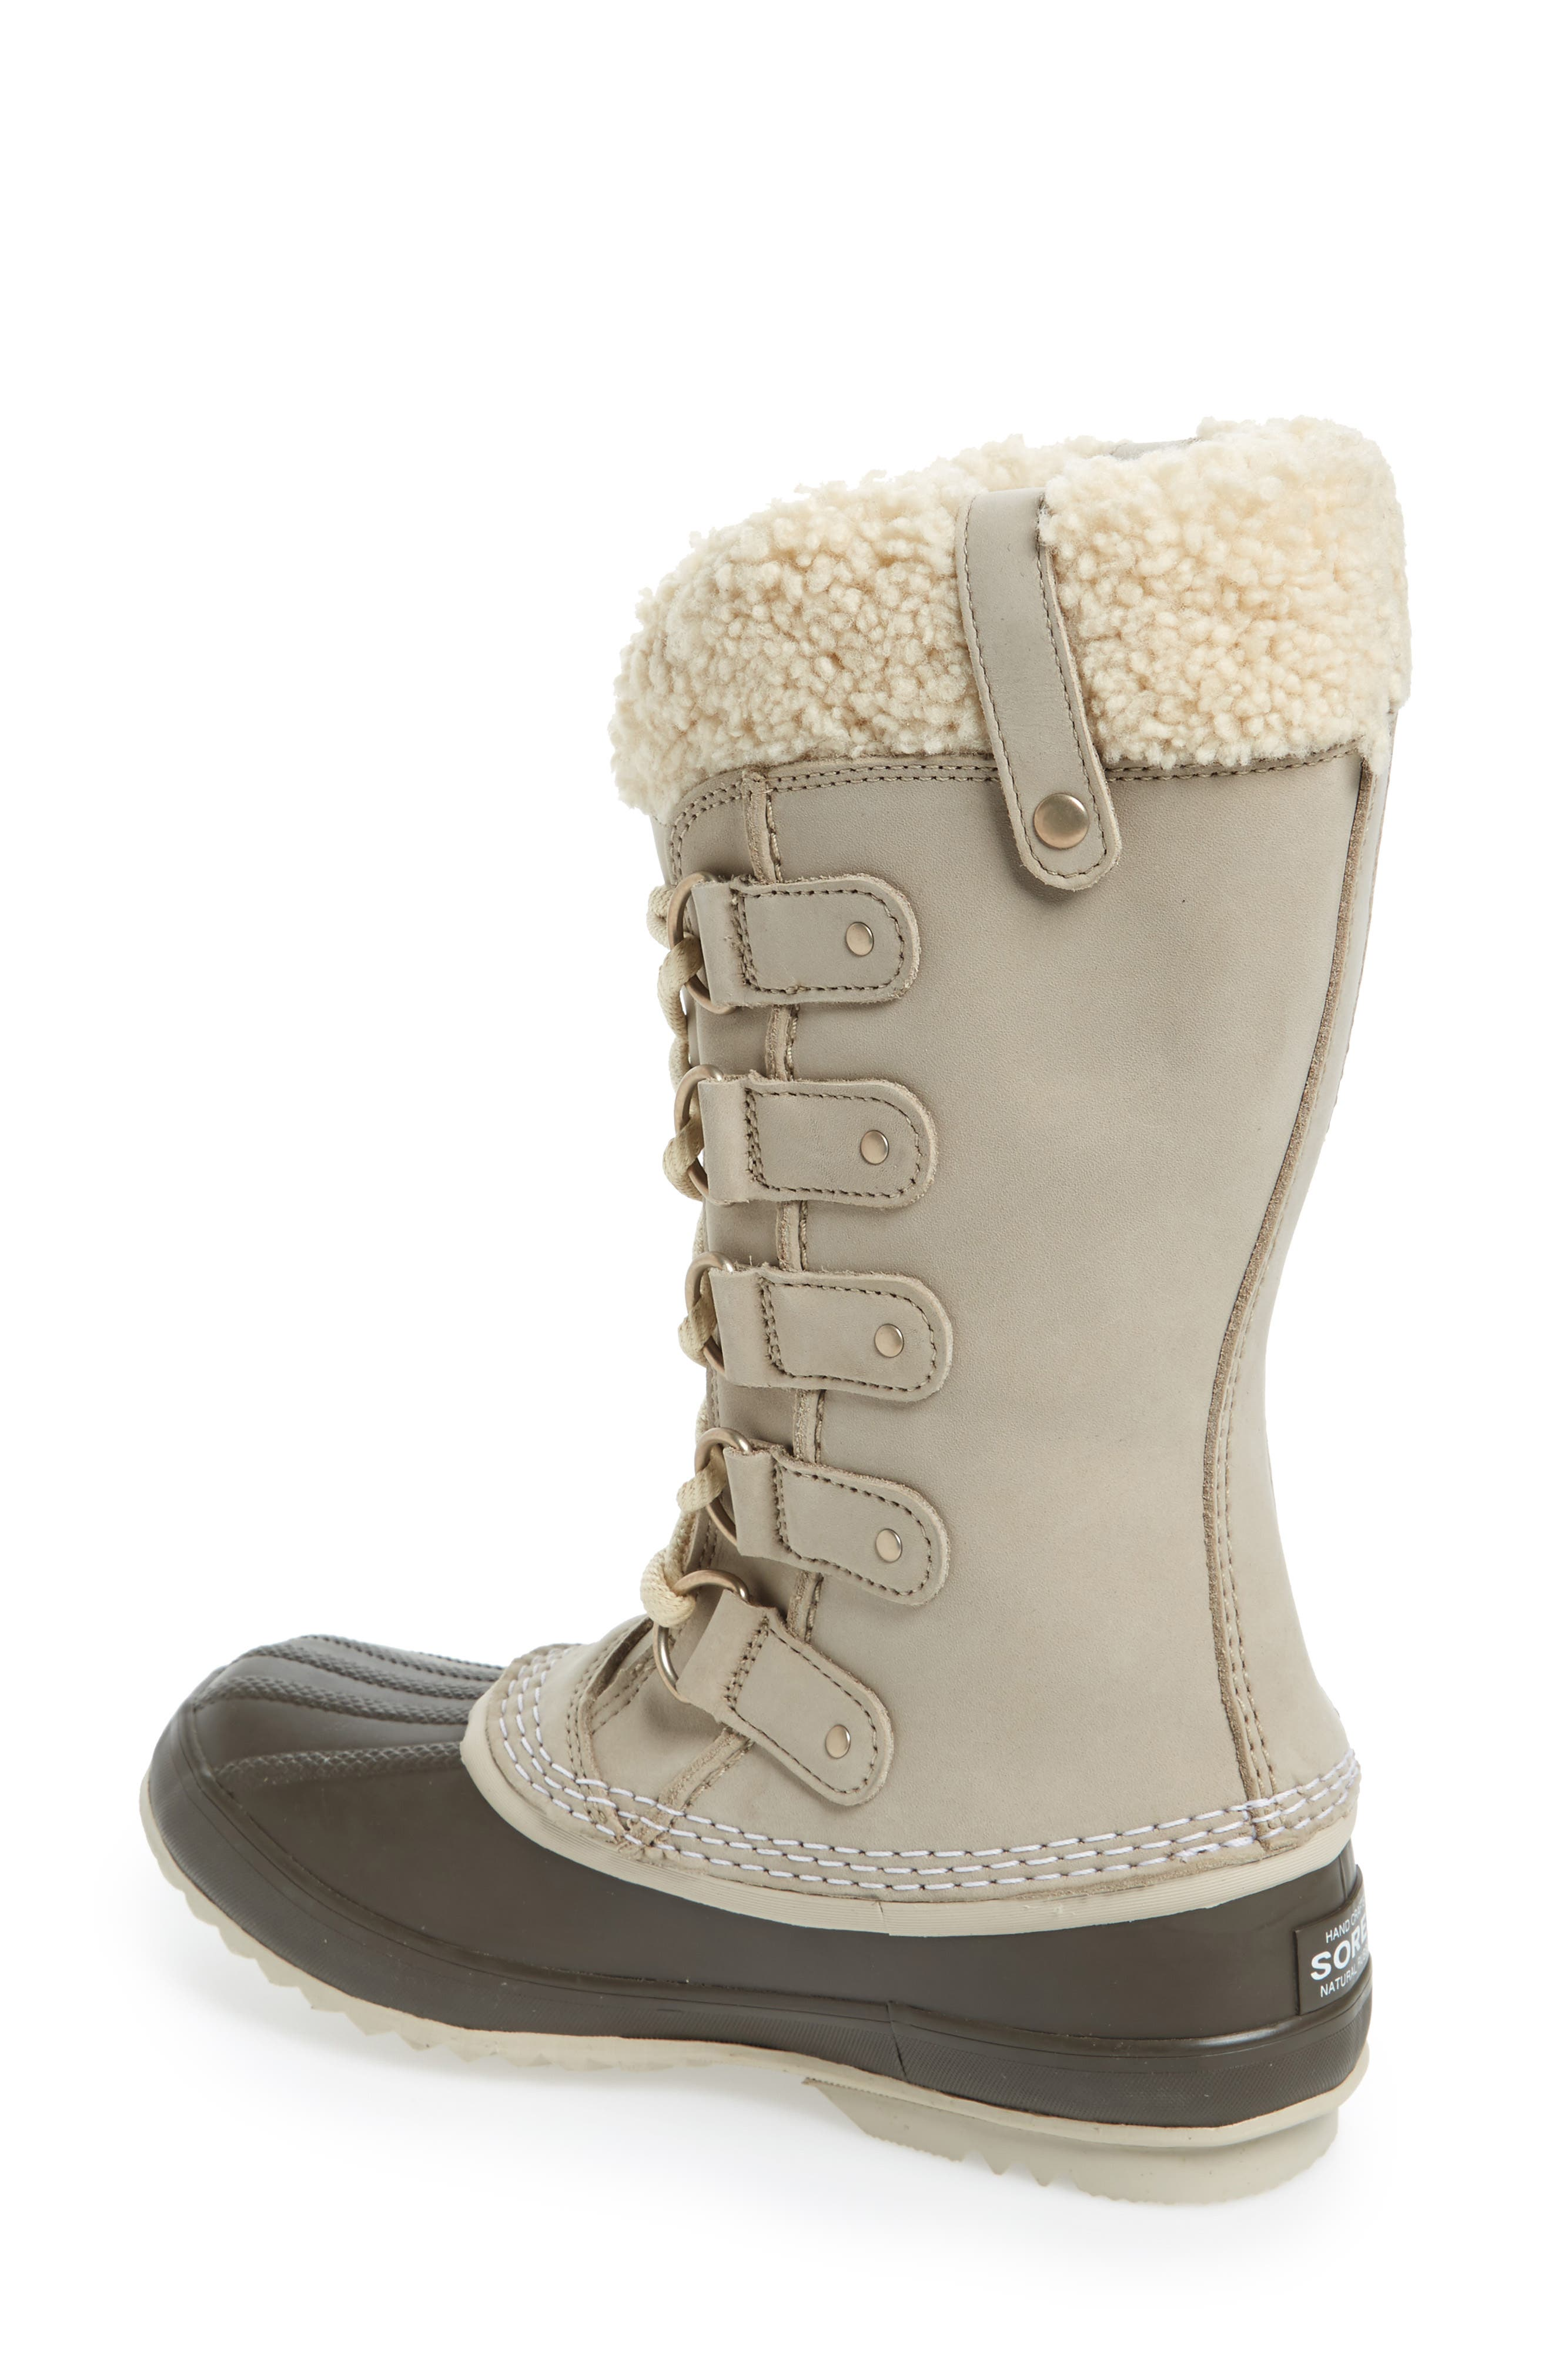 Joan of Arctic<sup>™</sup> Lux Waterproof Winter Boot with Genuine  Shearling Cuff,                             Alternate thumbnail 2, color,                             271